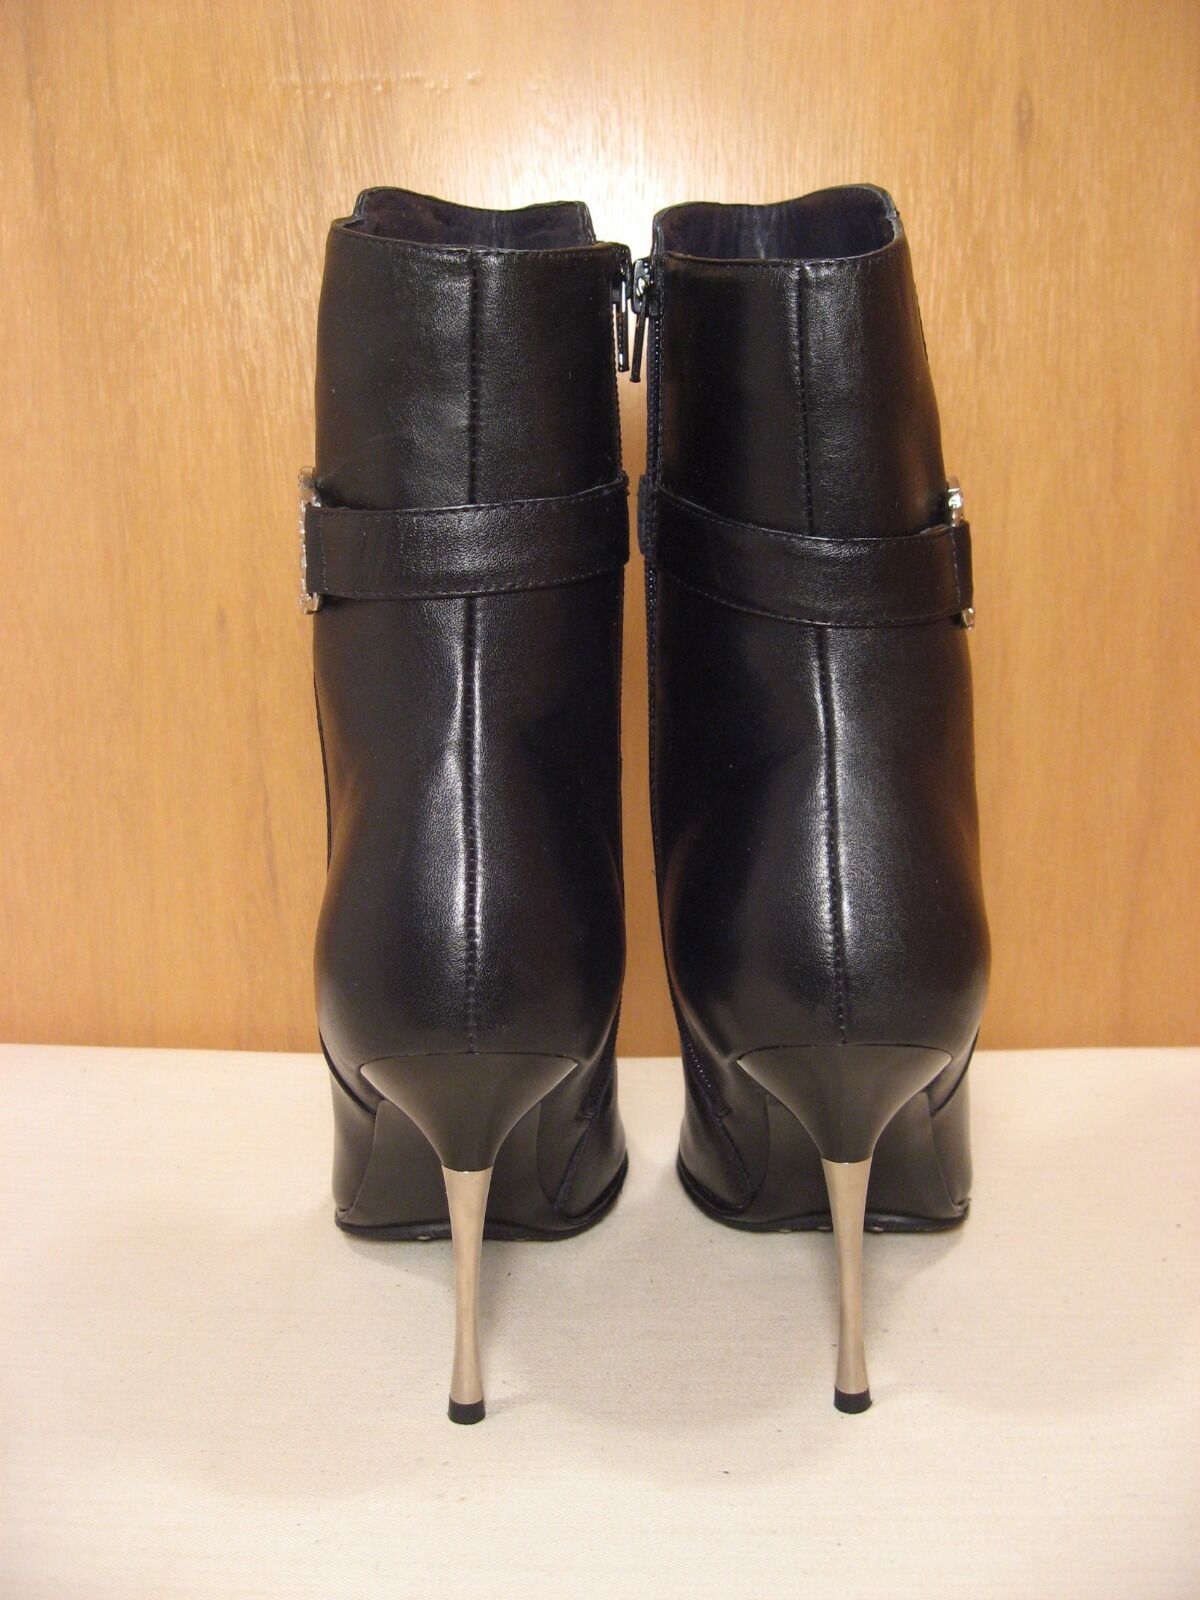 LAURA BIAGIOTTI Italy Black Leather Ankle Boots - Size 39 or 9